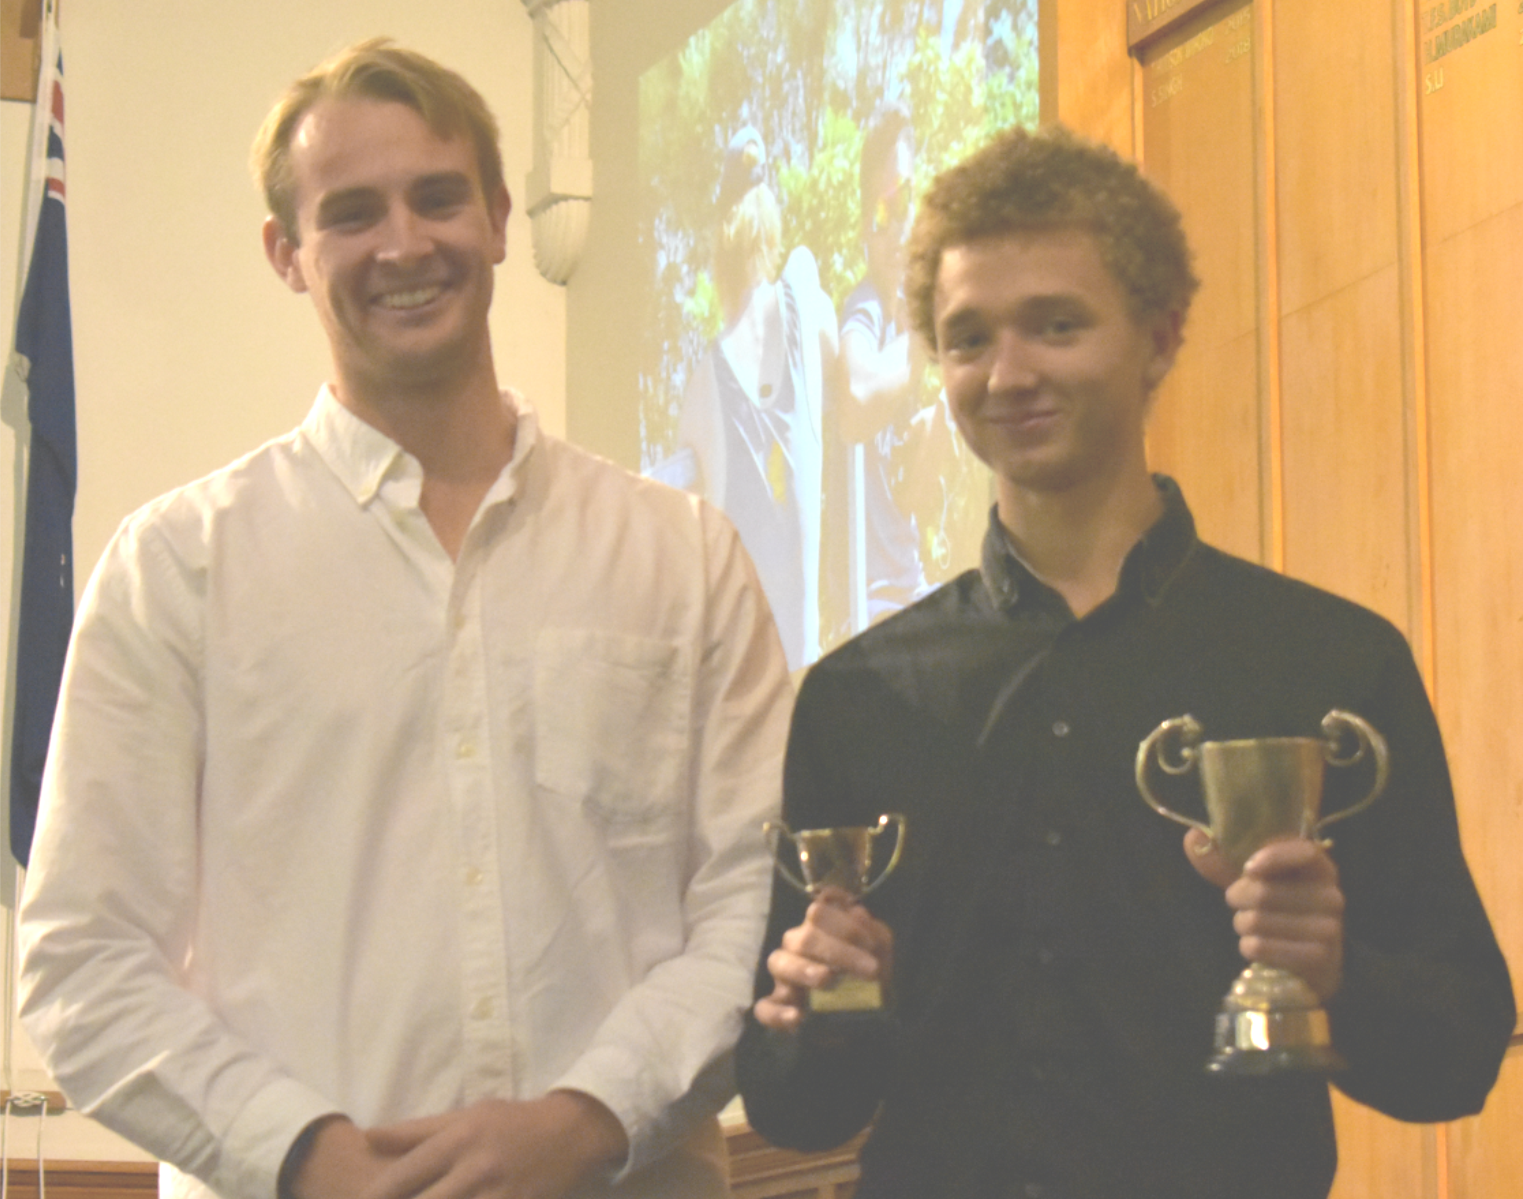 Anton - Most Improved Oarsman 2018